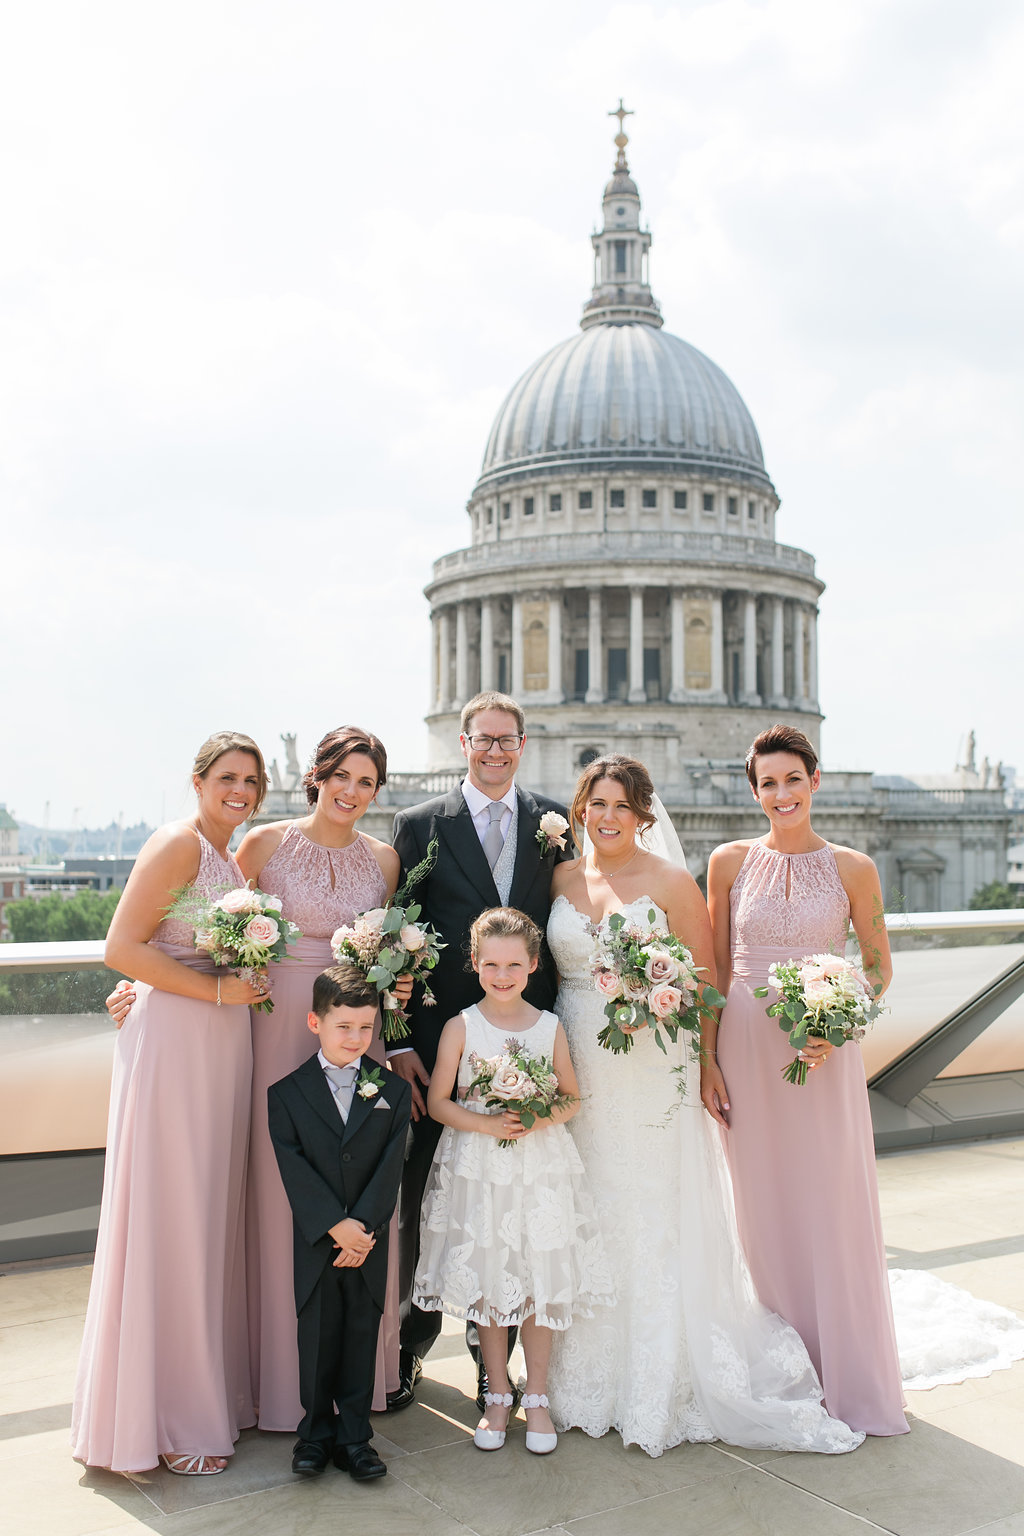 st-pauls-cathedral-london-wedding-photographer-roberta-facchini-43